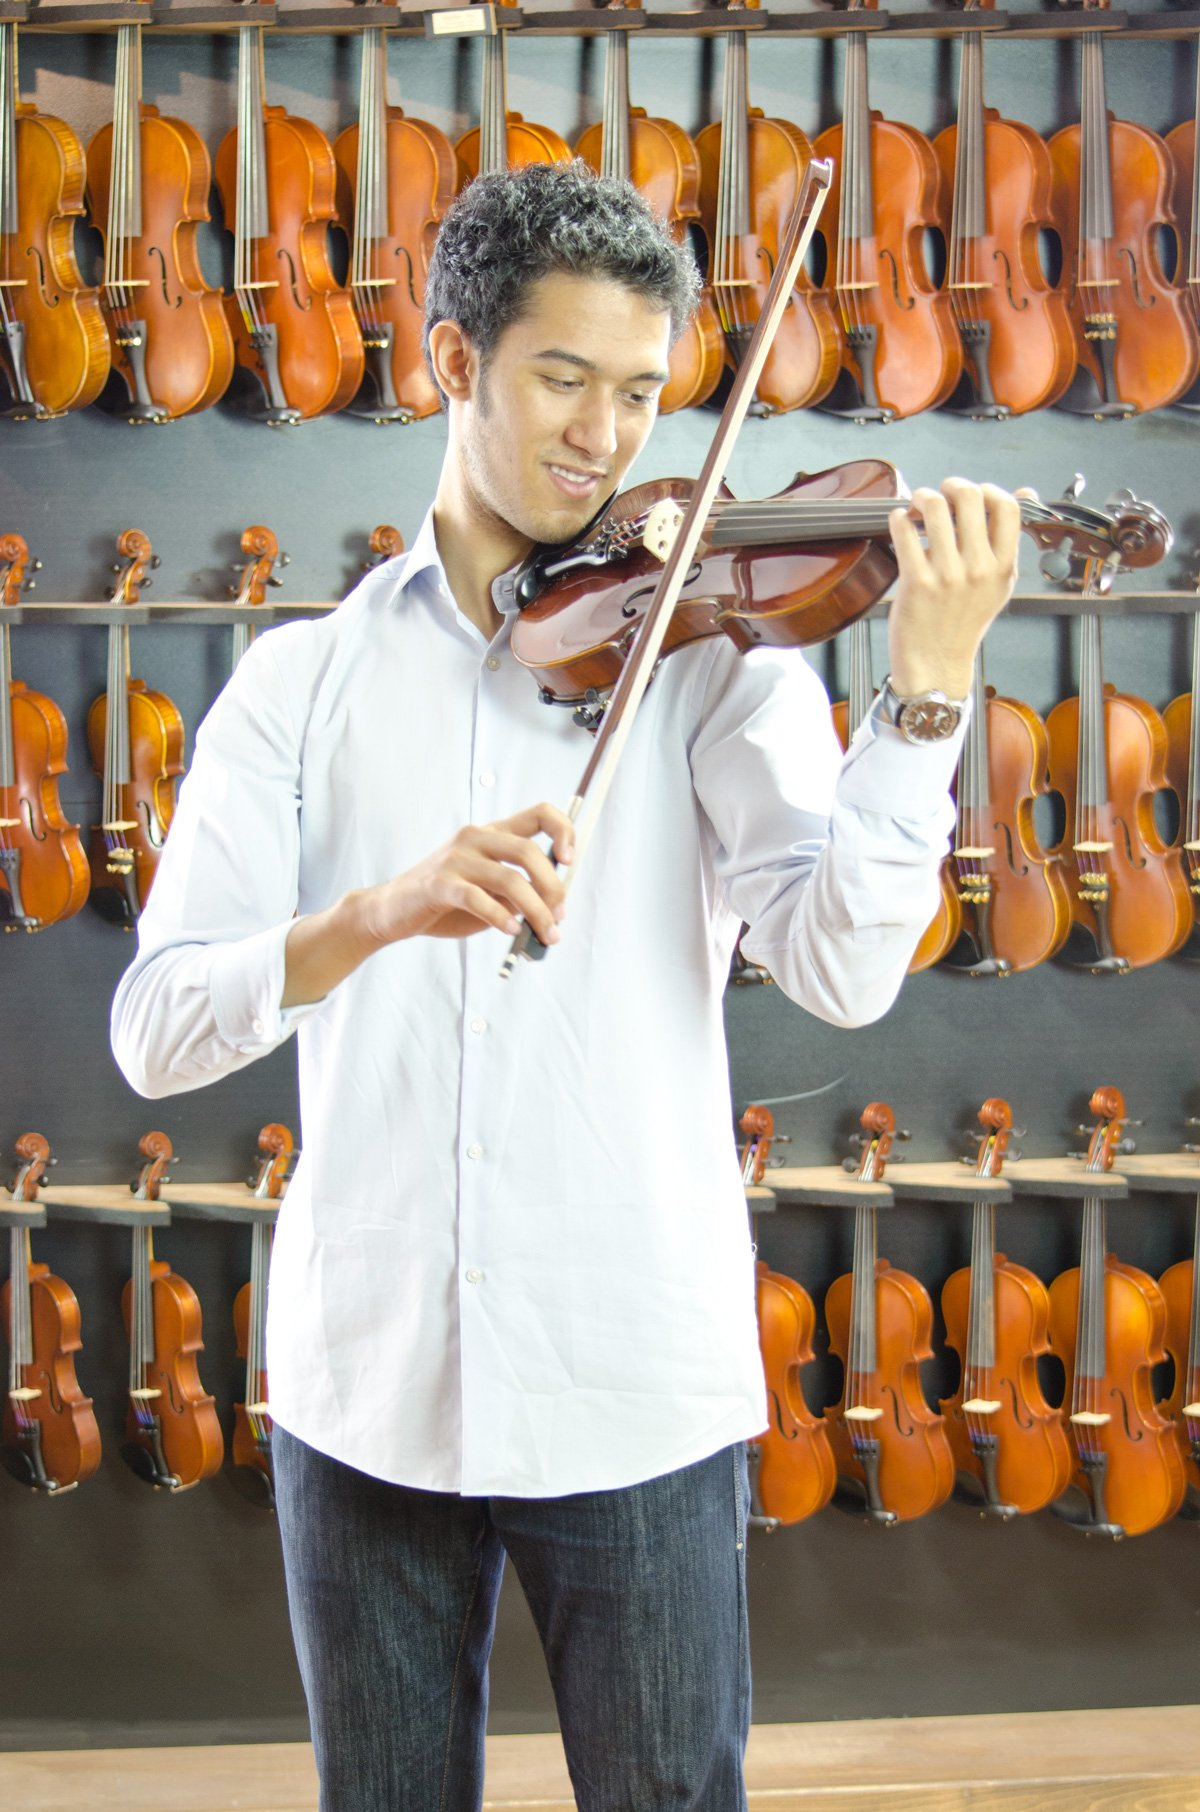 CLEARANCE Antonio Giuliani Etude Viola Outfit in action